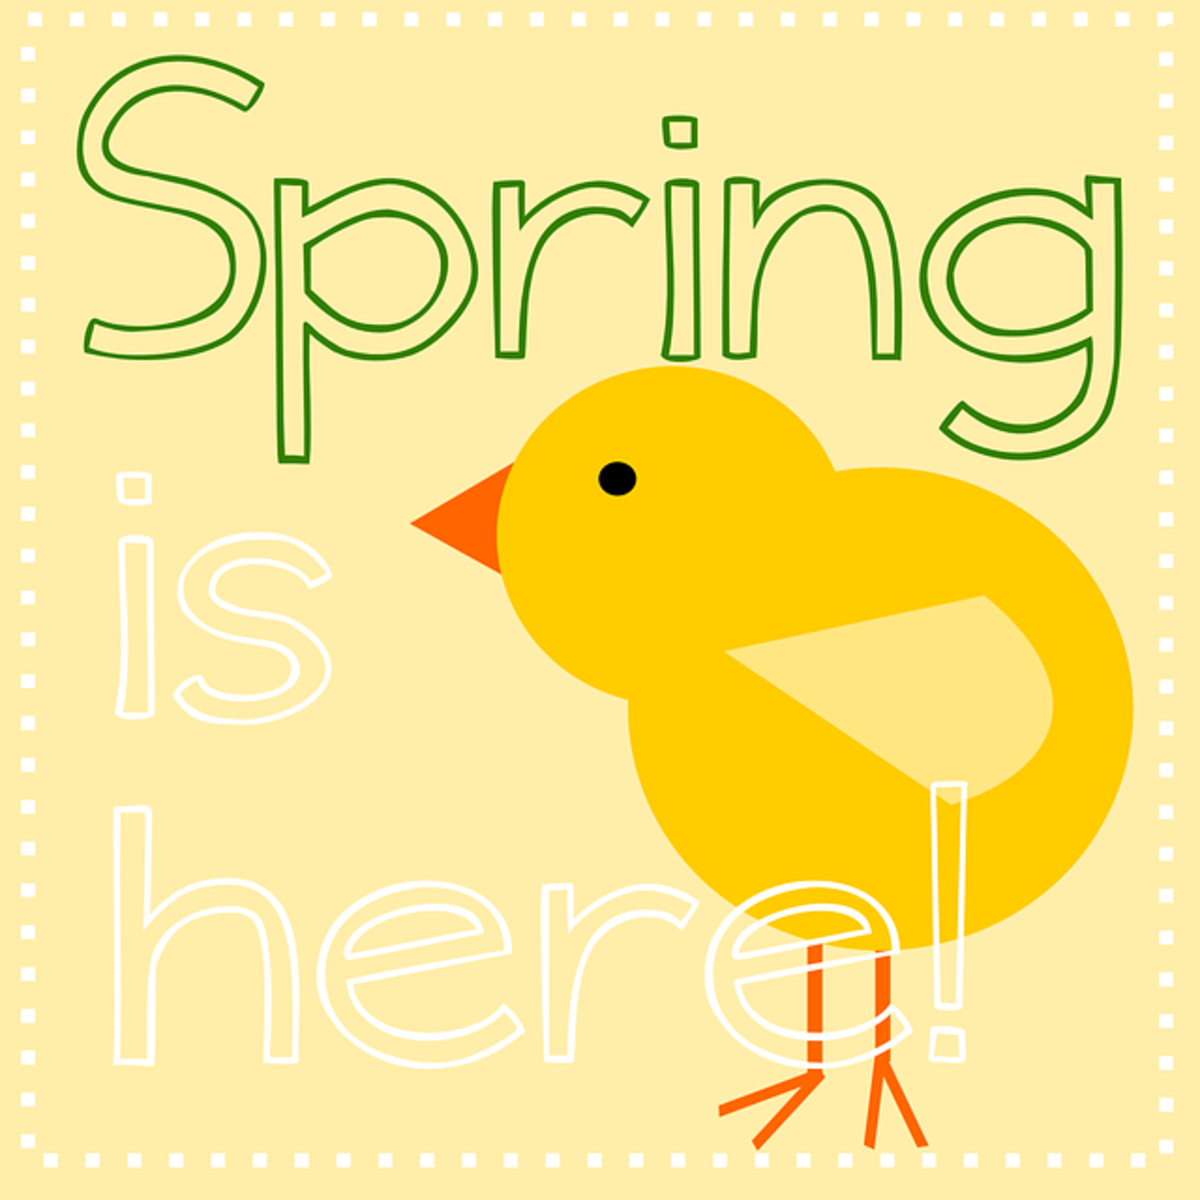 'Spring is Here' with a Baby Chick